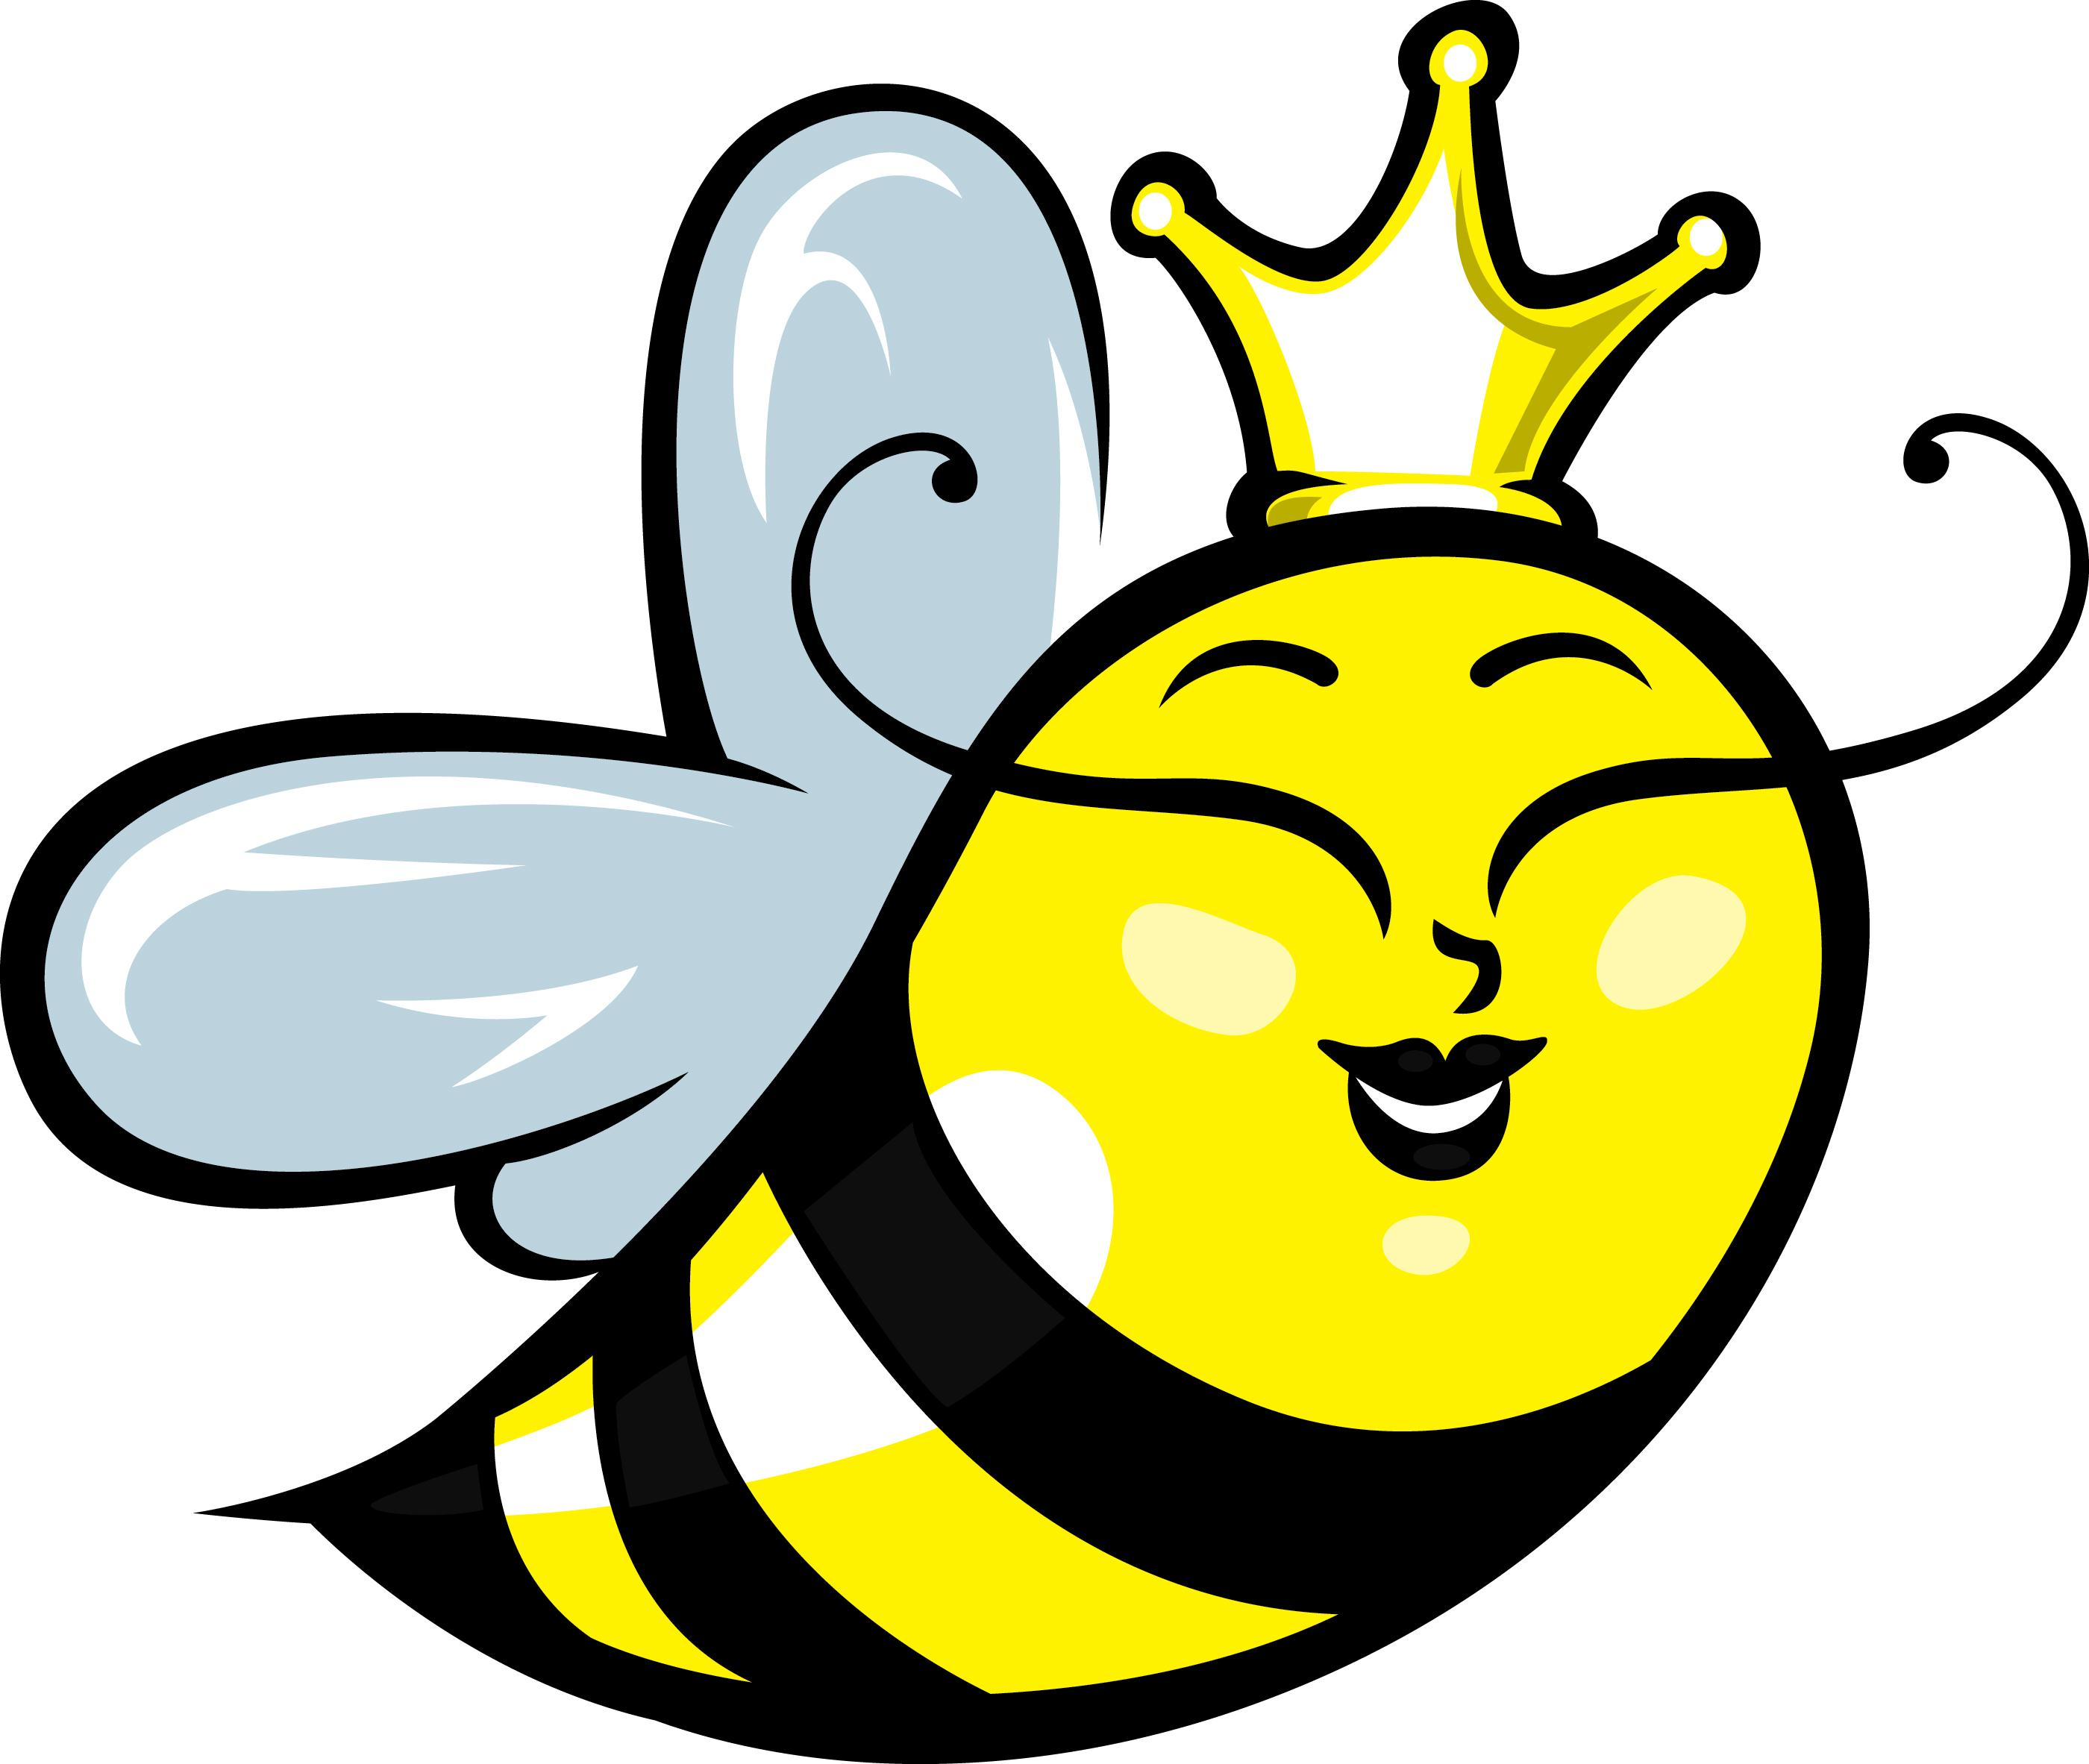 Bee clipart pencil. Sensational design honey images